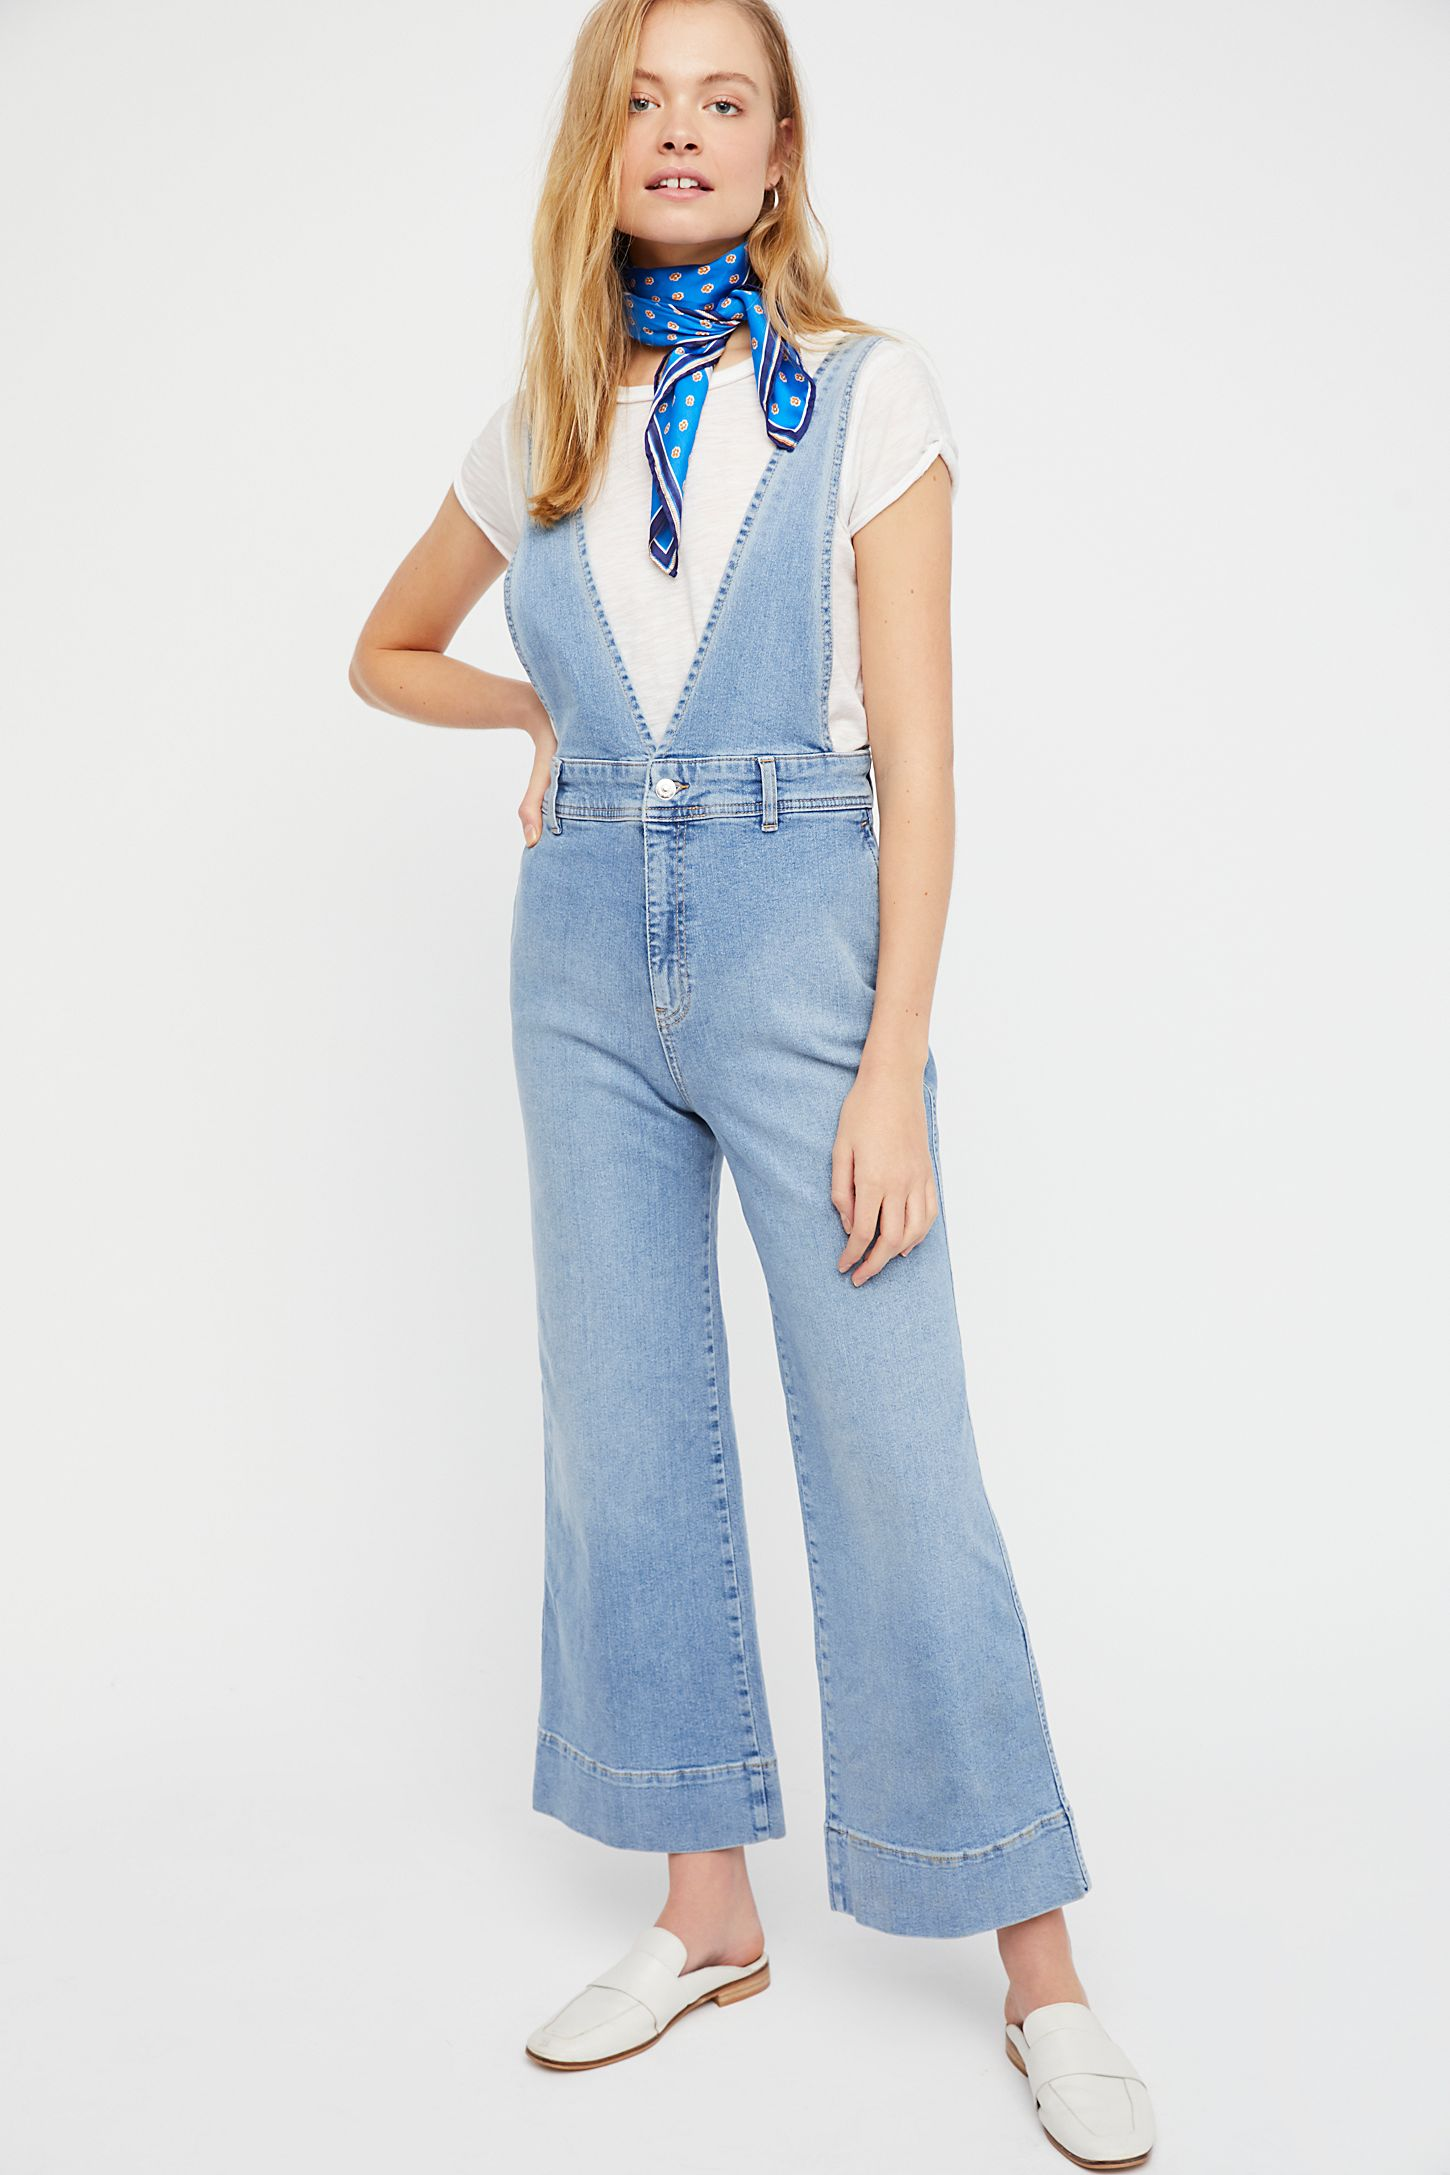 A-Line Overall | Free People